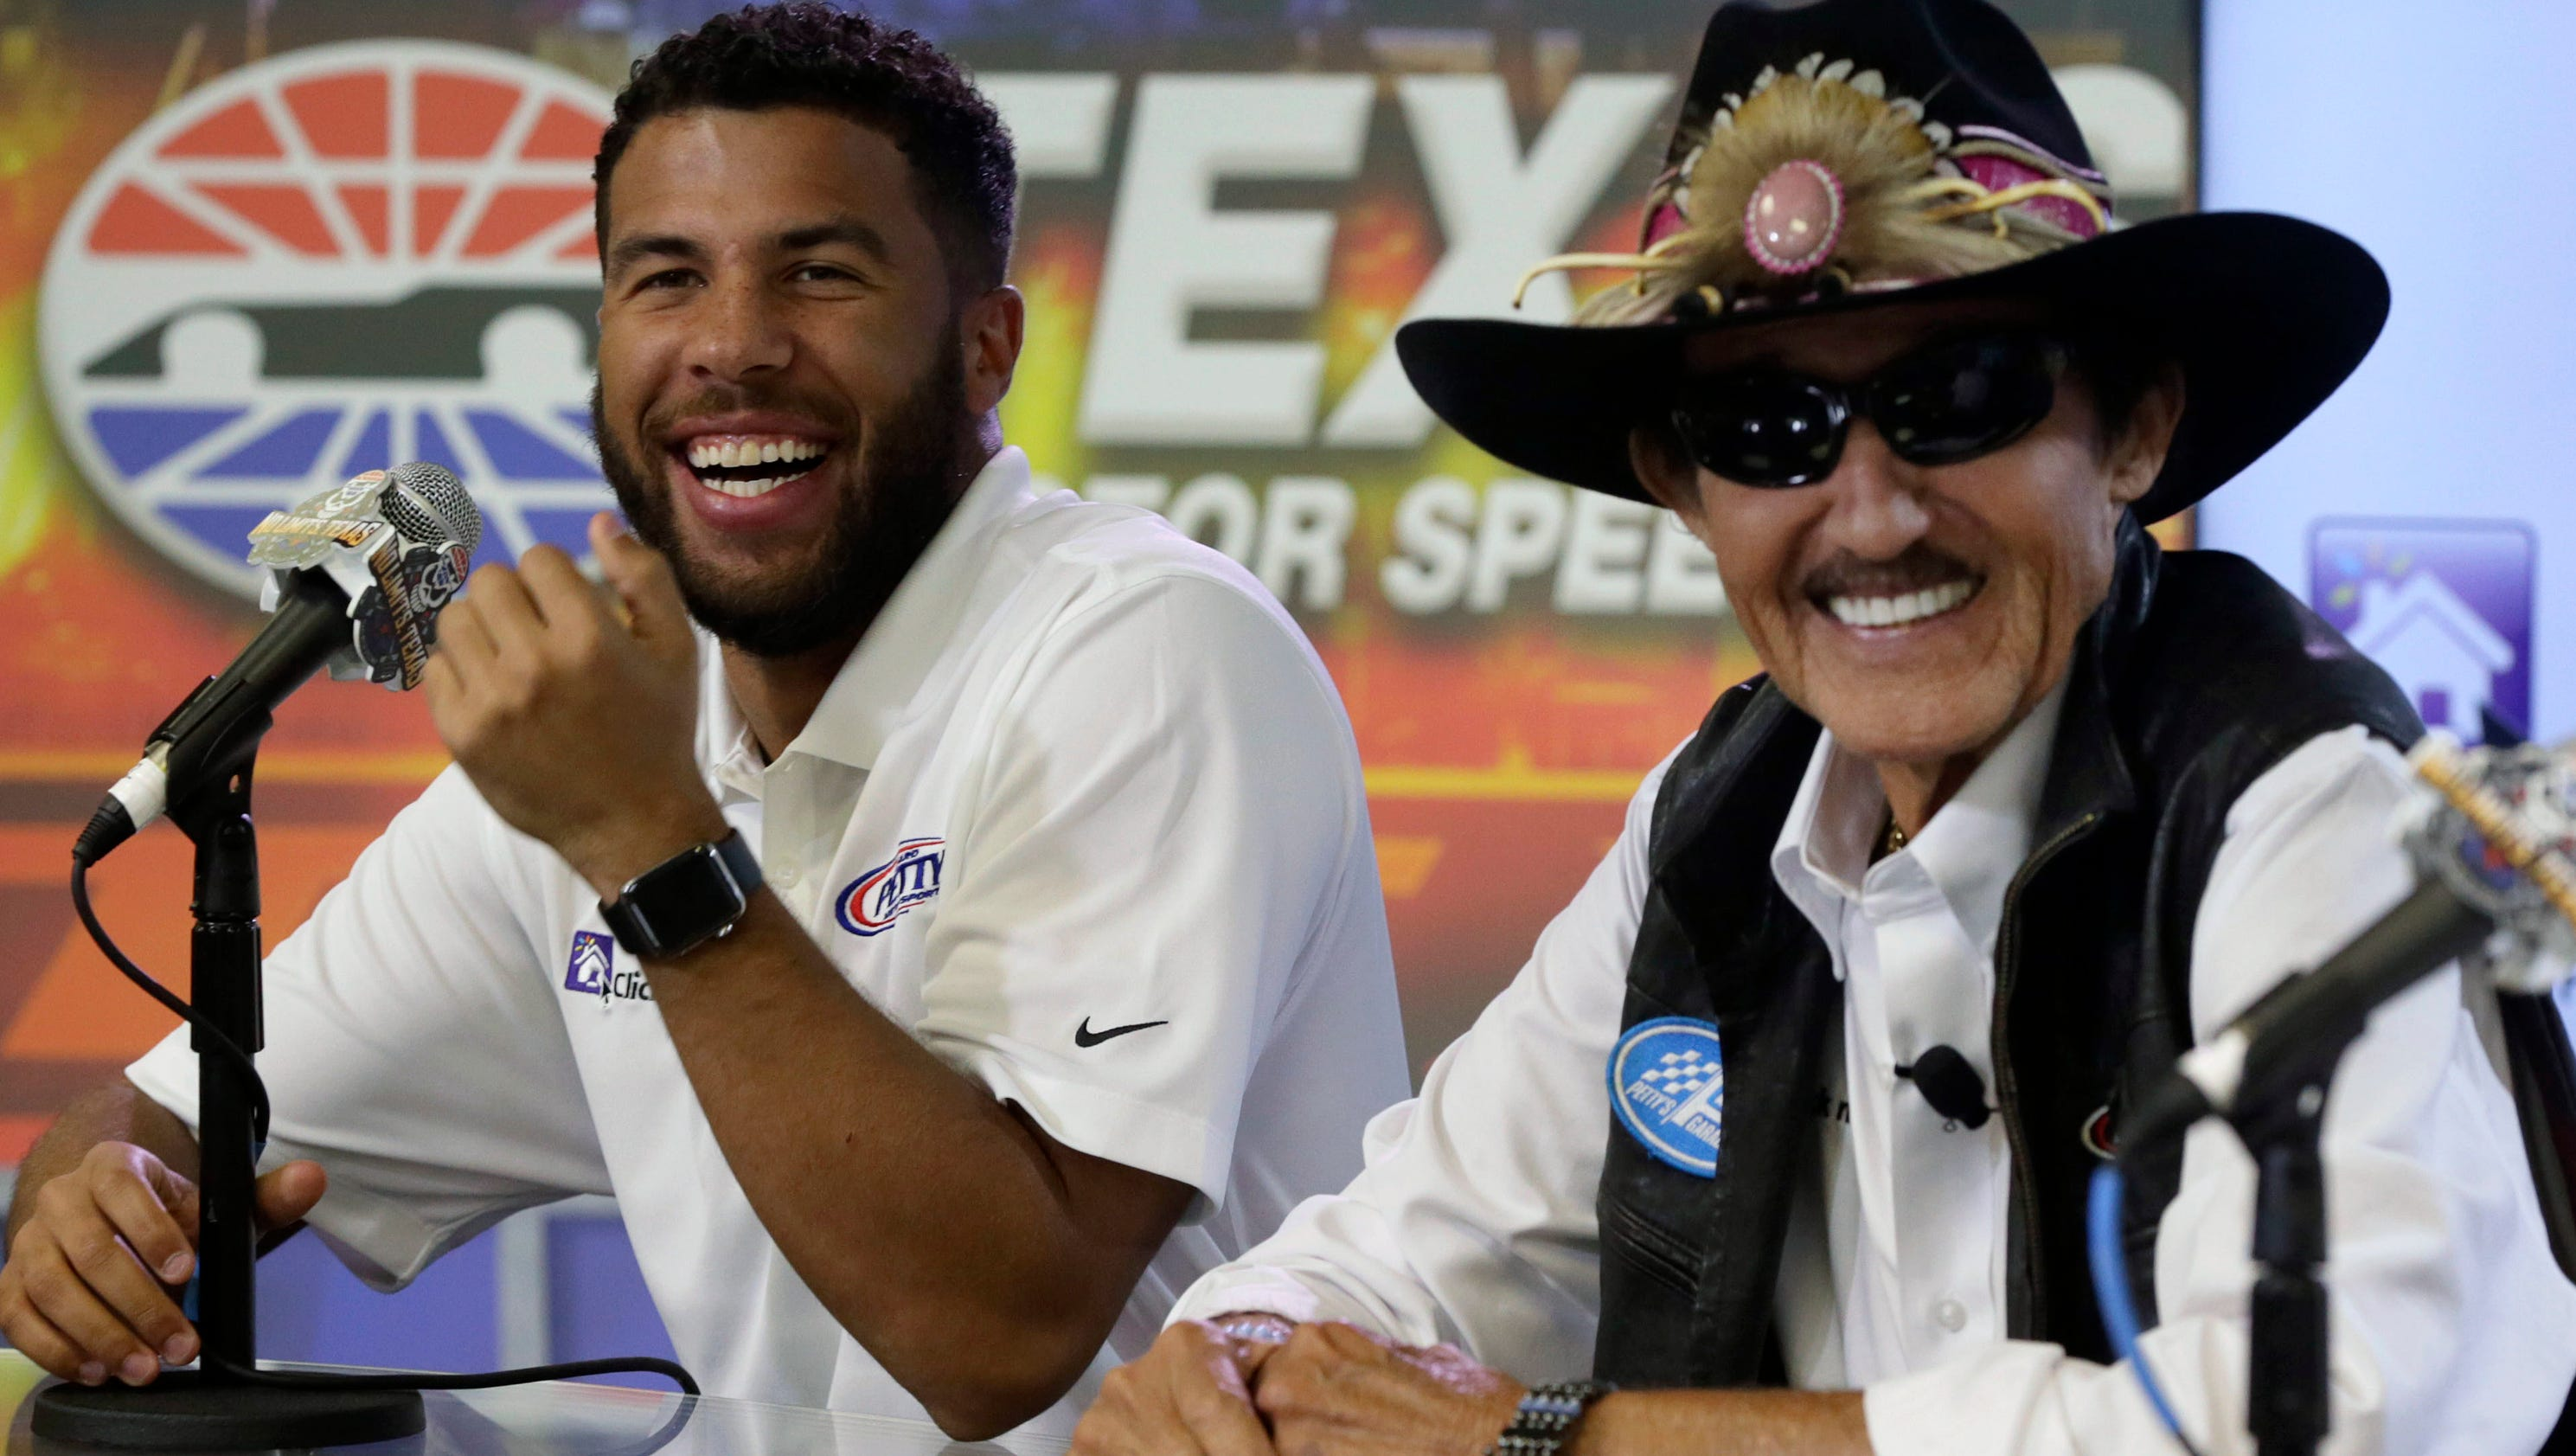 Richard Petty Motorsports >> RPM has primary sponsor for Darrell Wallace's full-time Cup debut